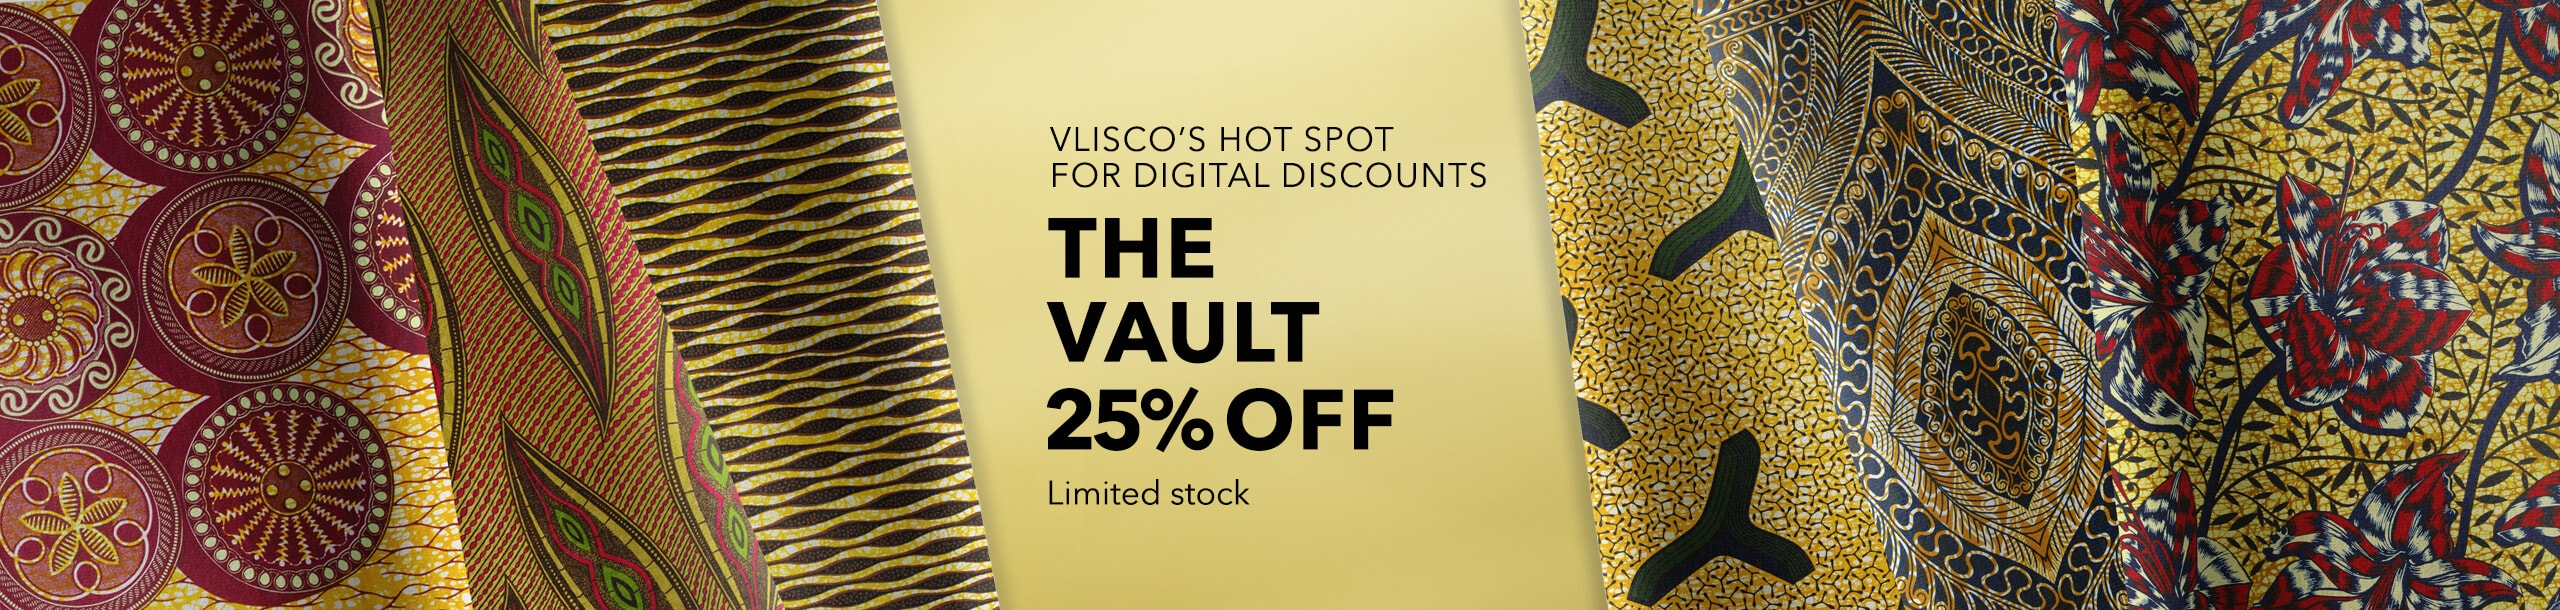 THE VAULT: Special offers